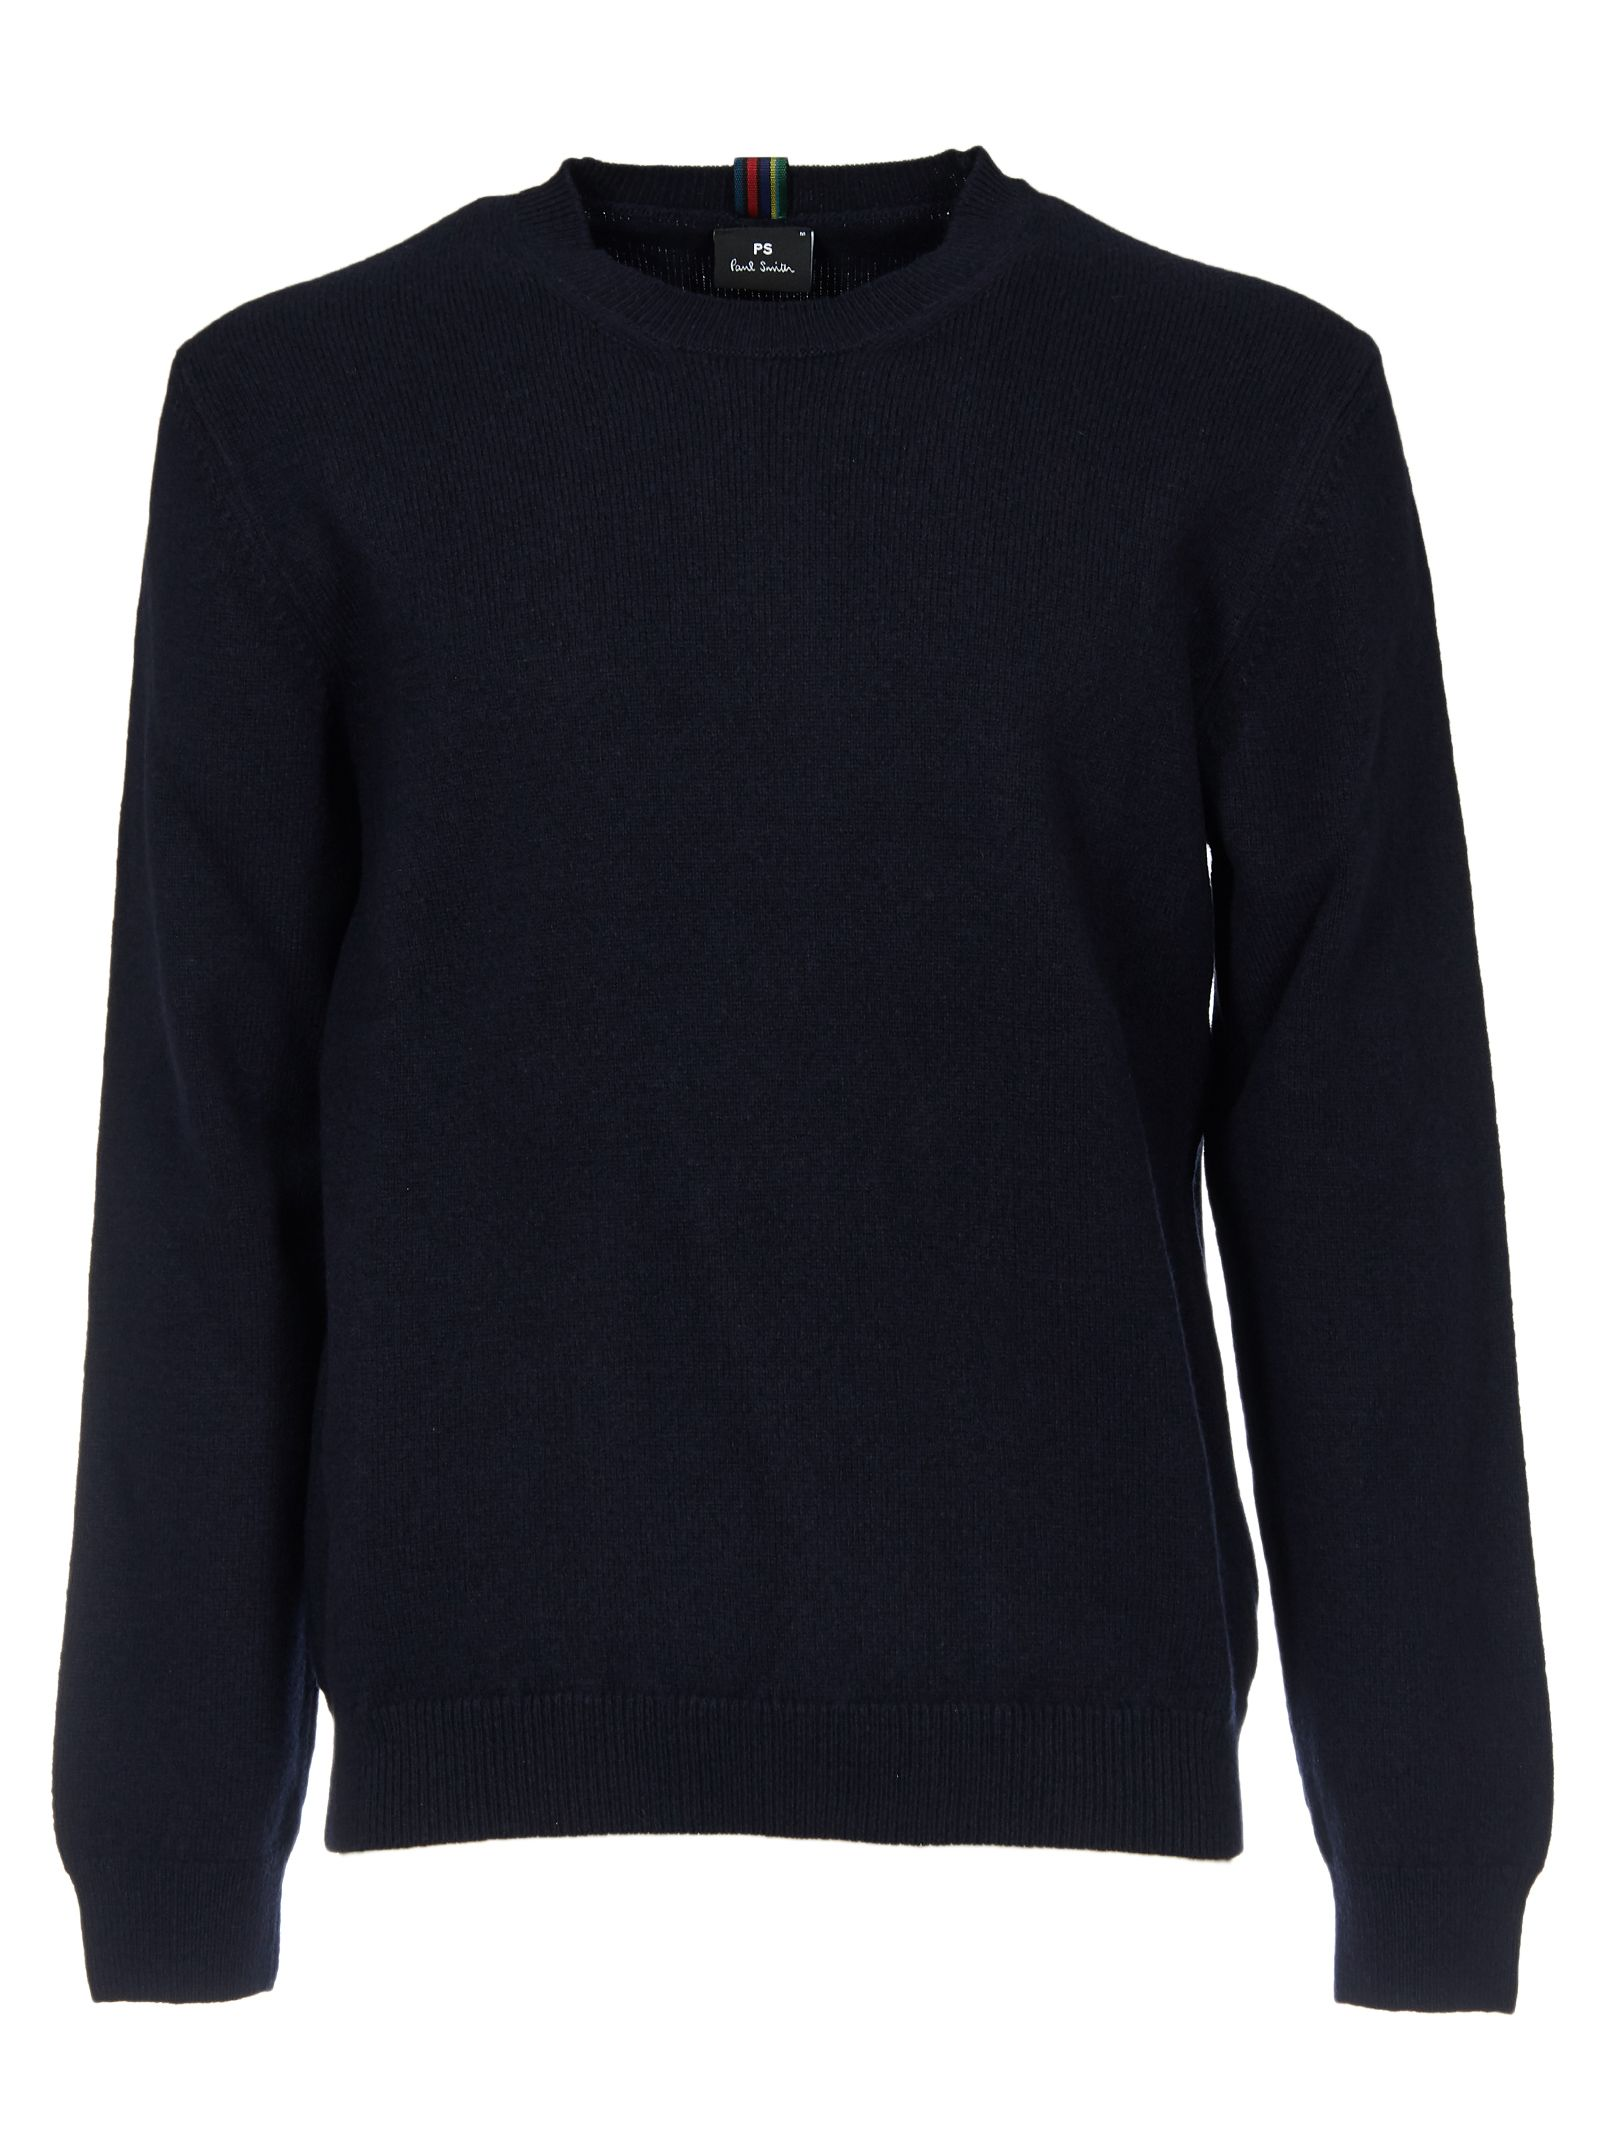 Paul Smith Round Neck Sweater